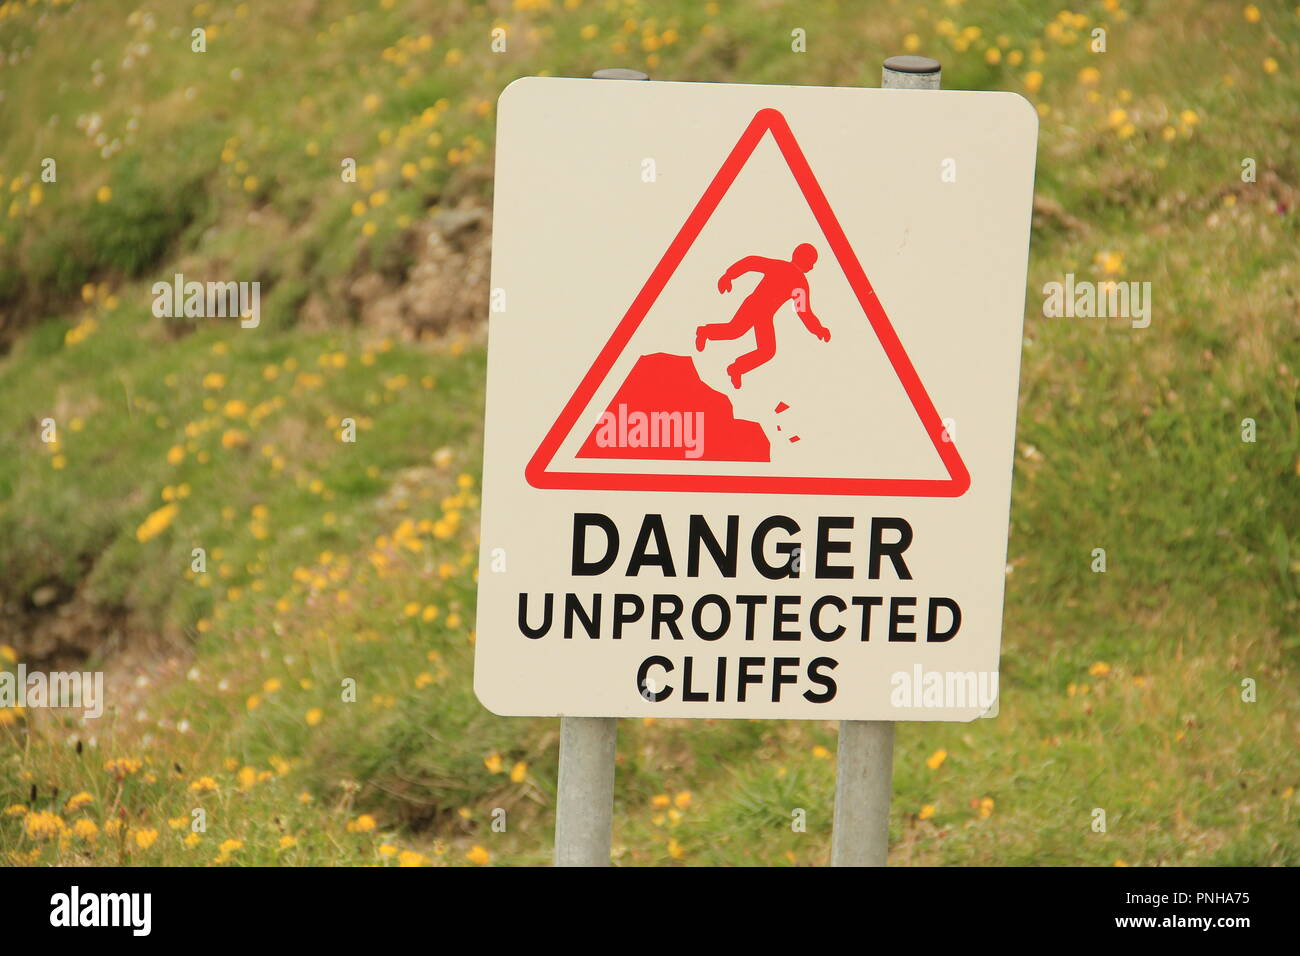 Dangerous cliffs - Stock Image